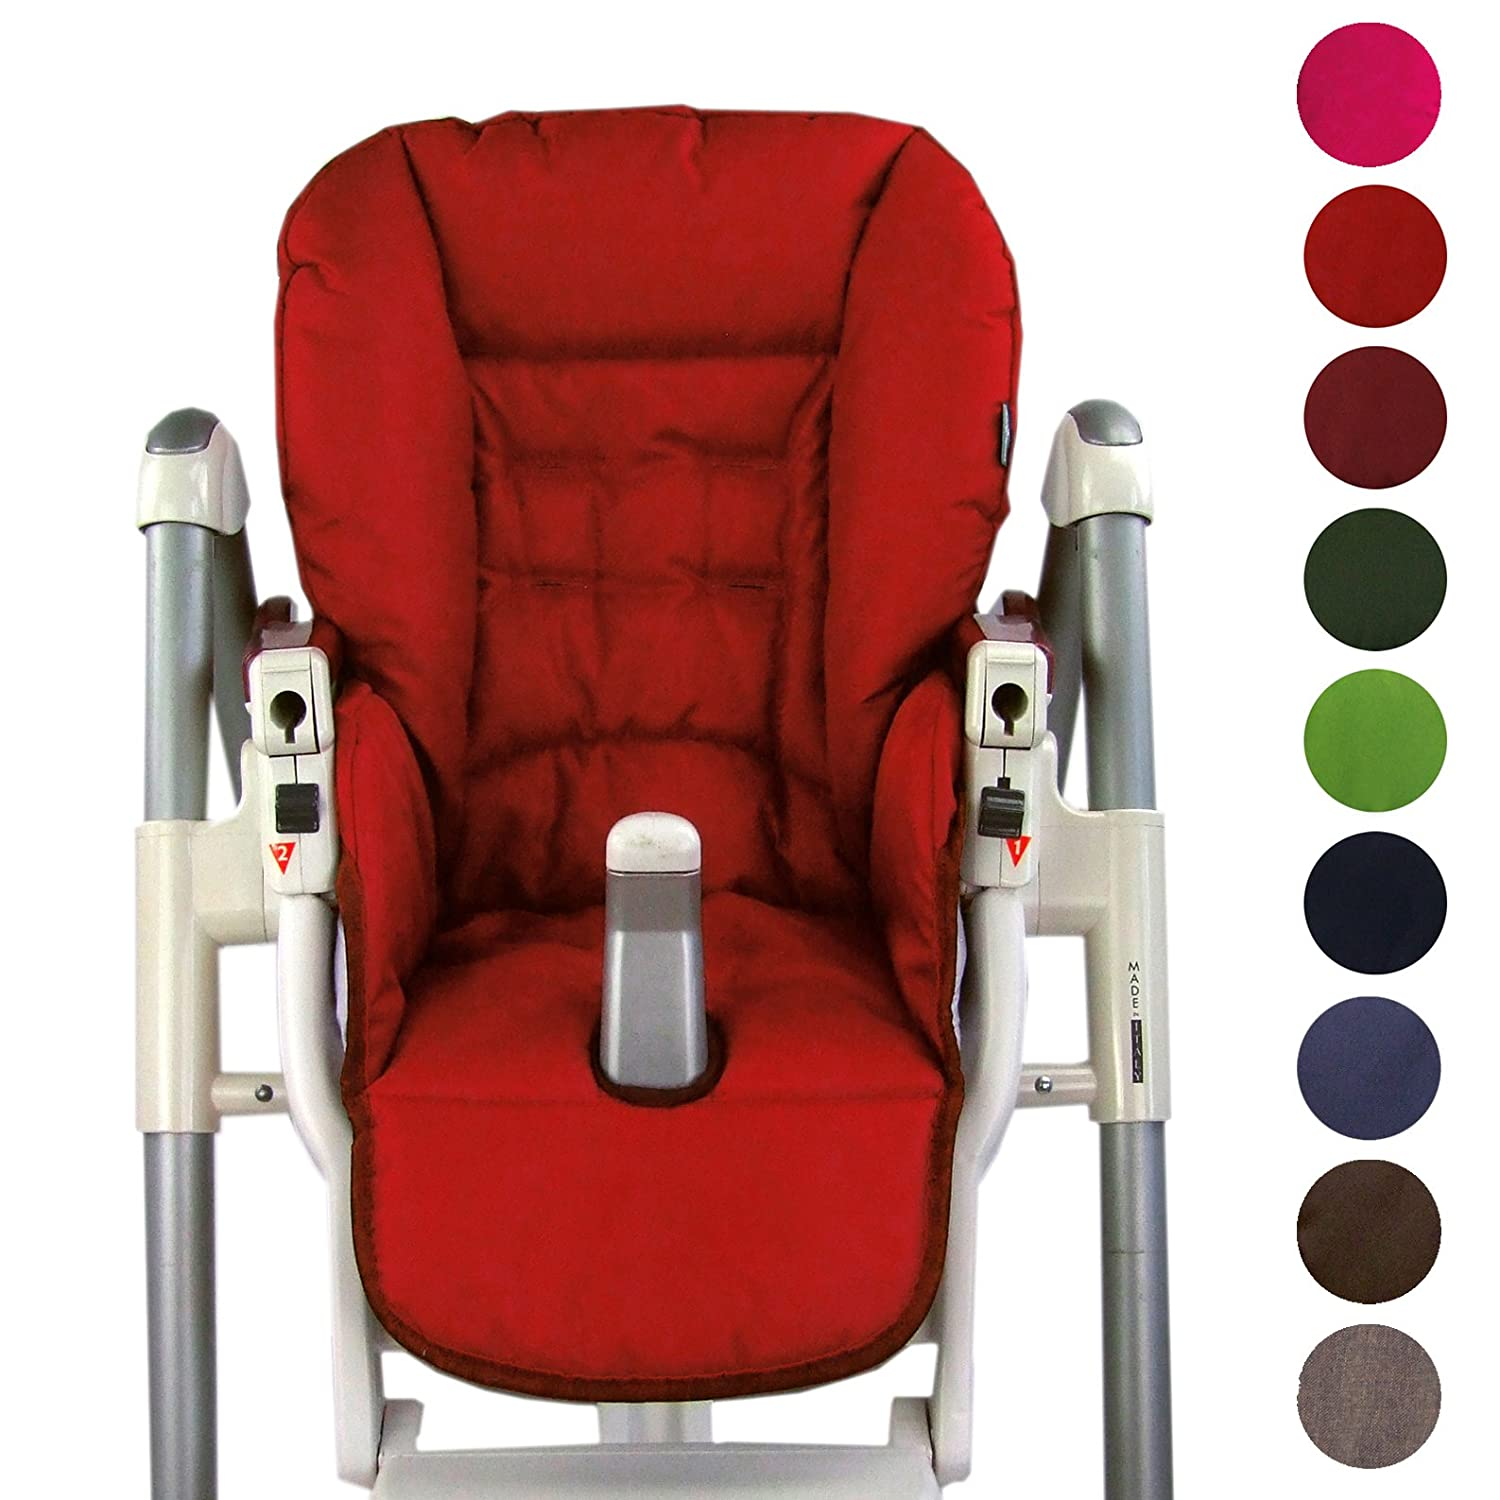 Bambini World Seat Cushion Replacement Case for Peg Perego Prima Pappa Diner * 9Colours * NEW Navy BambiniWelt